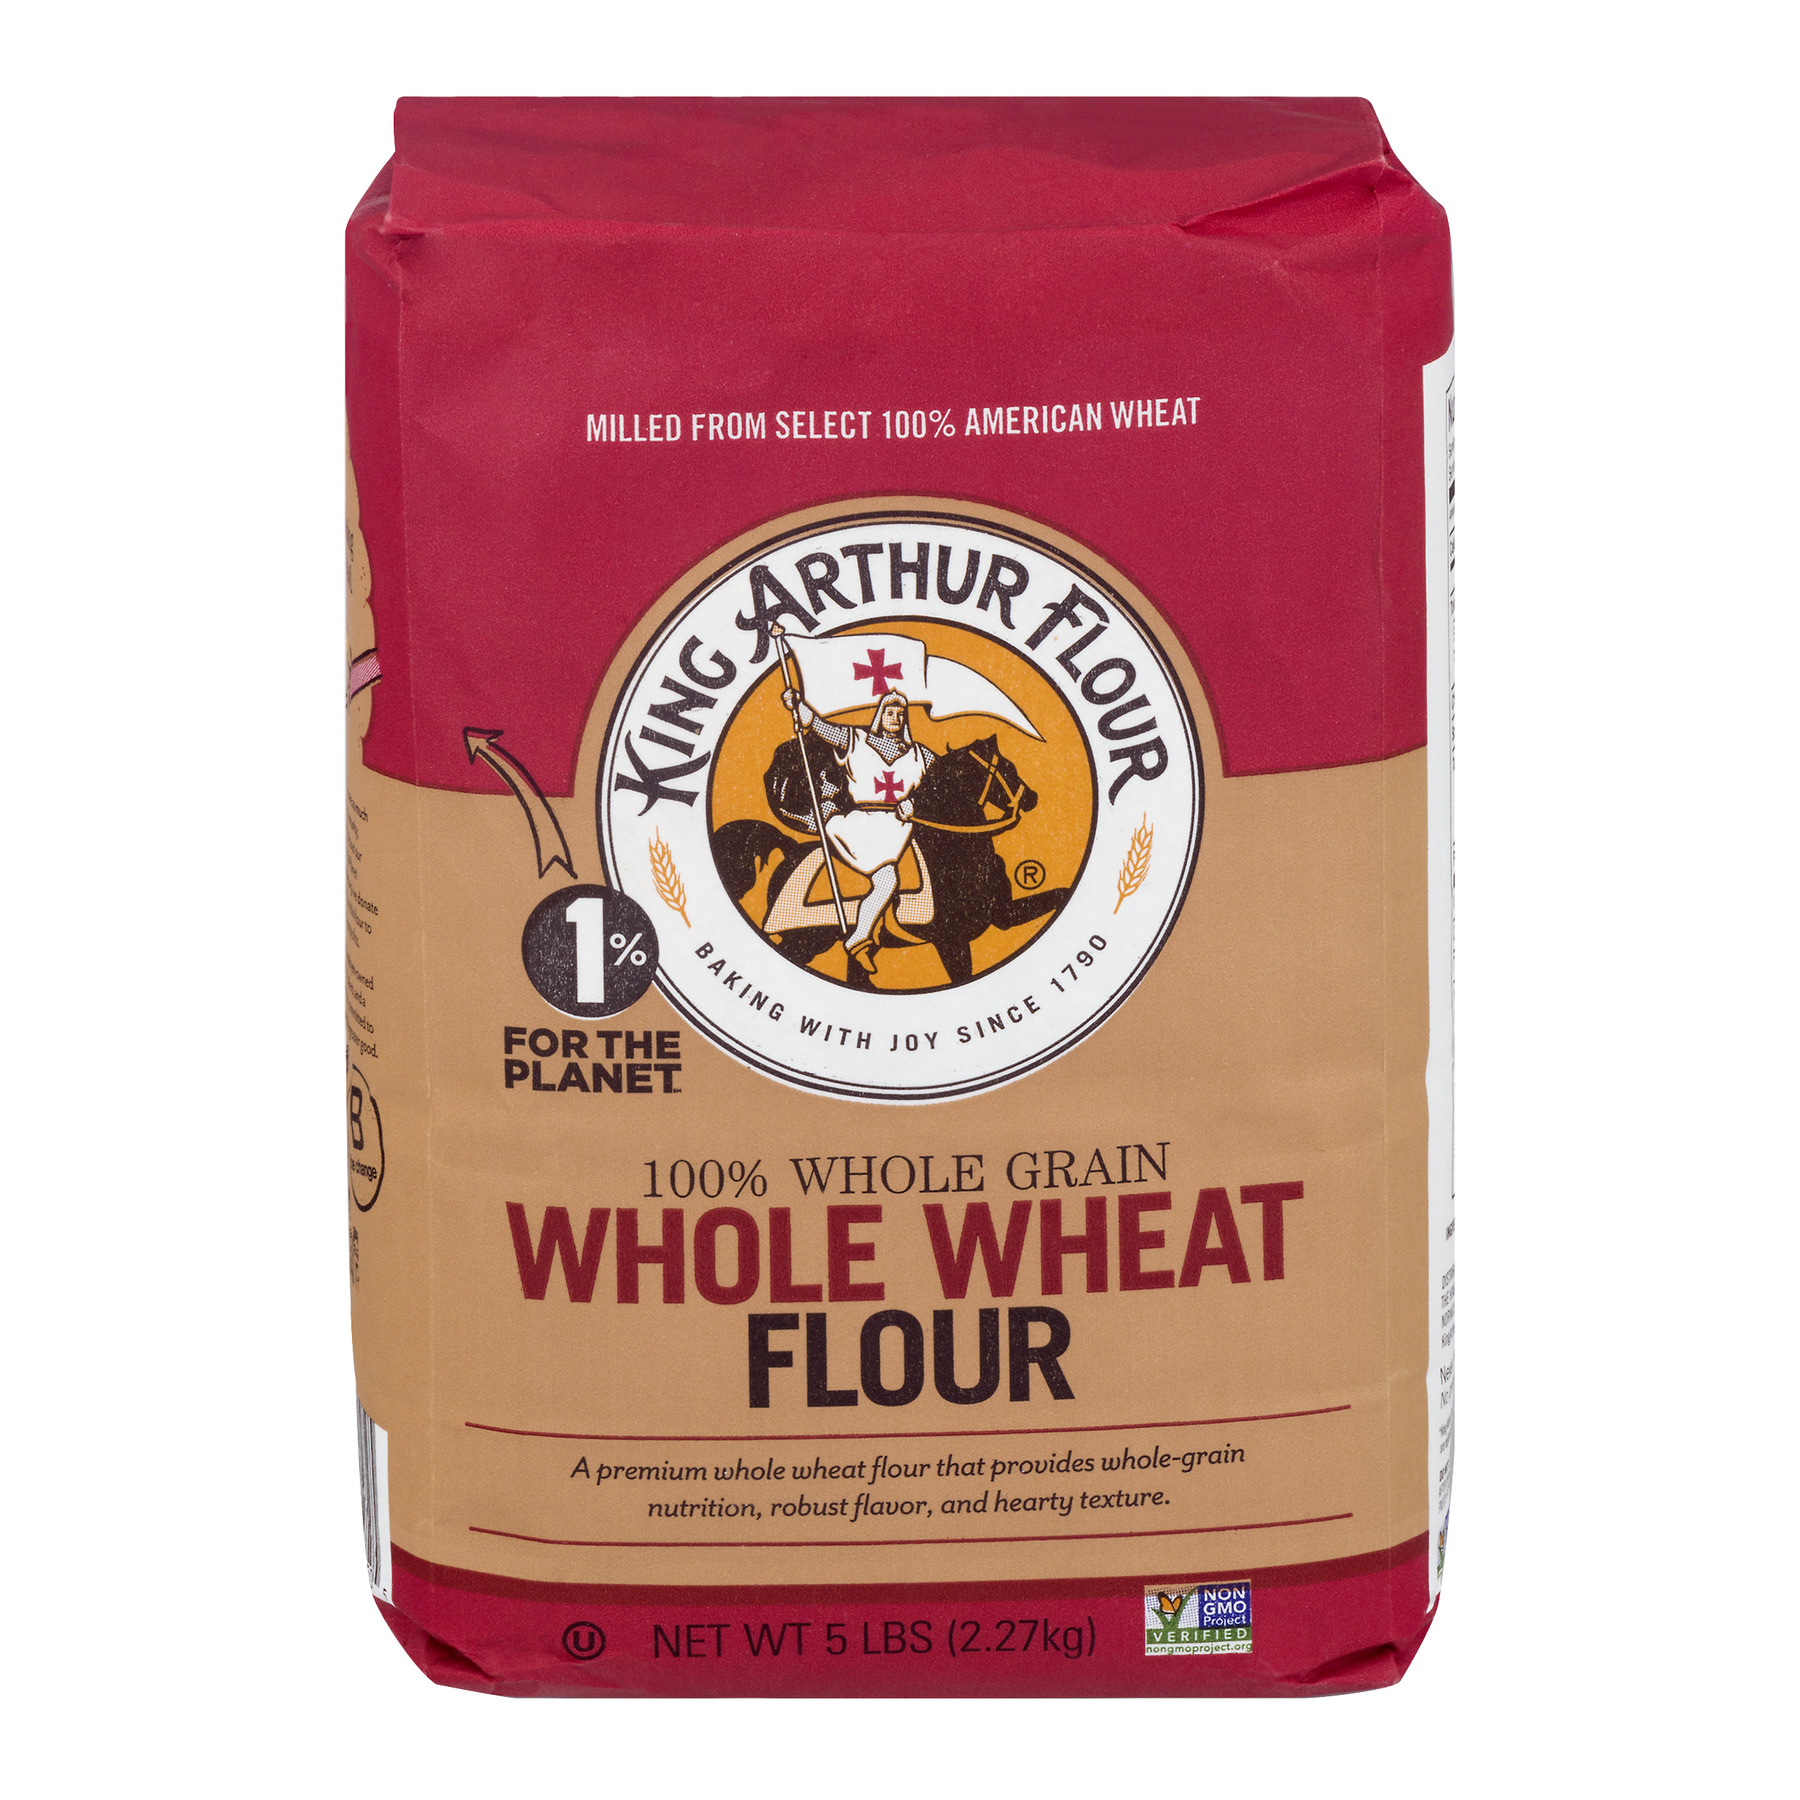 King Arthur Flour Premium 100% Whole Wheat Flour, 5.0 LB